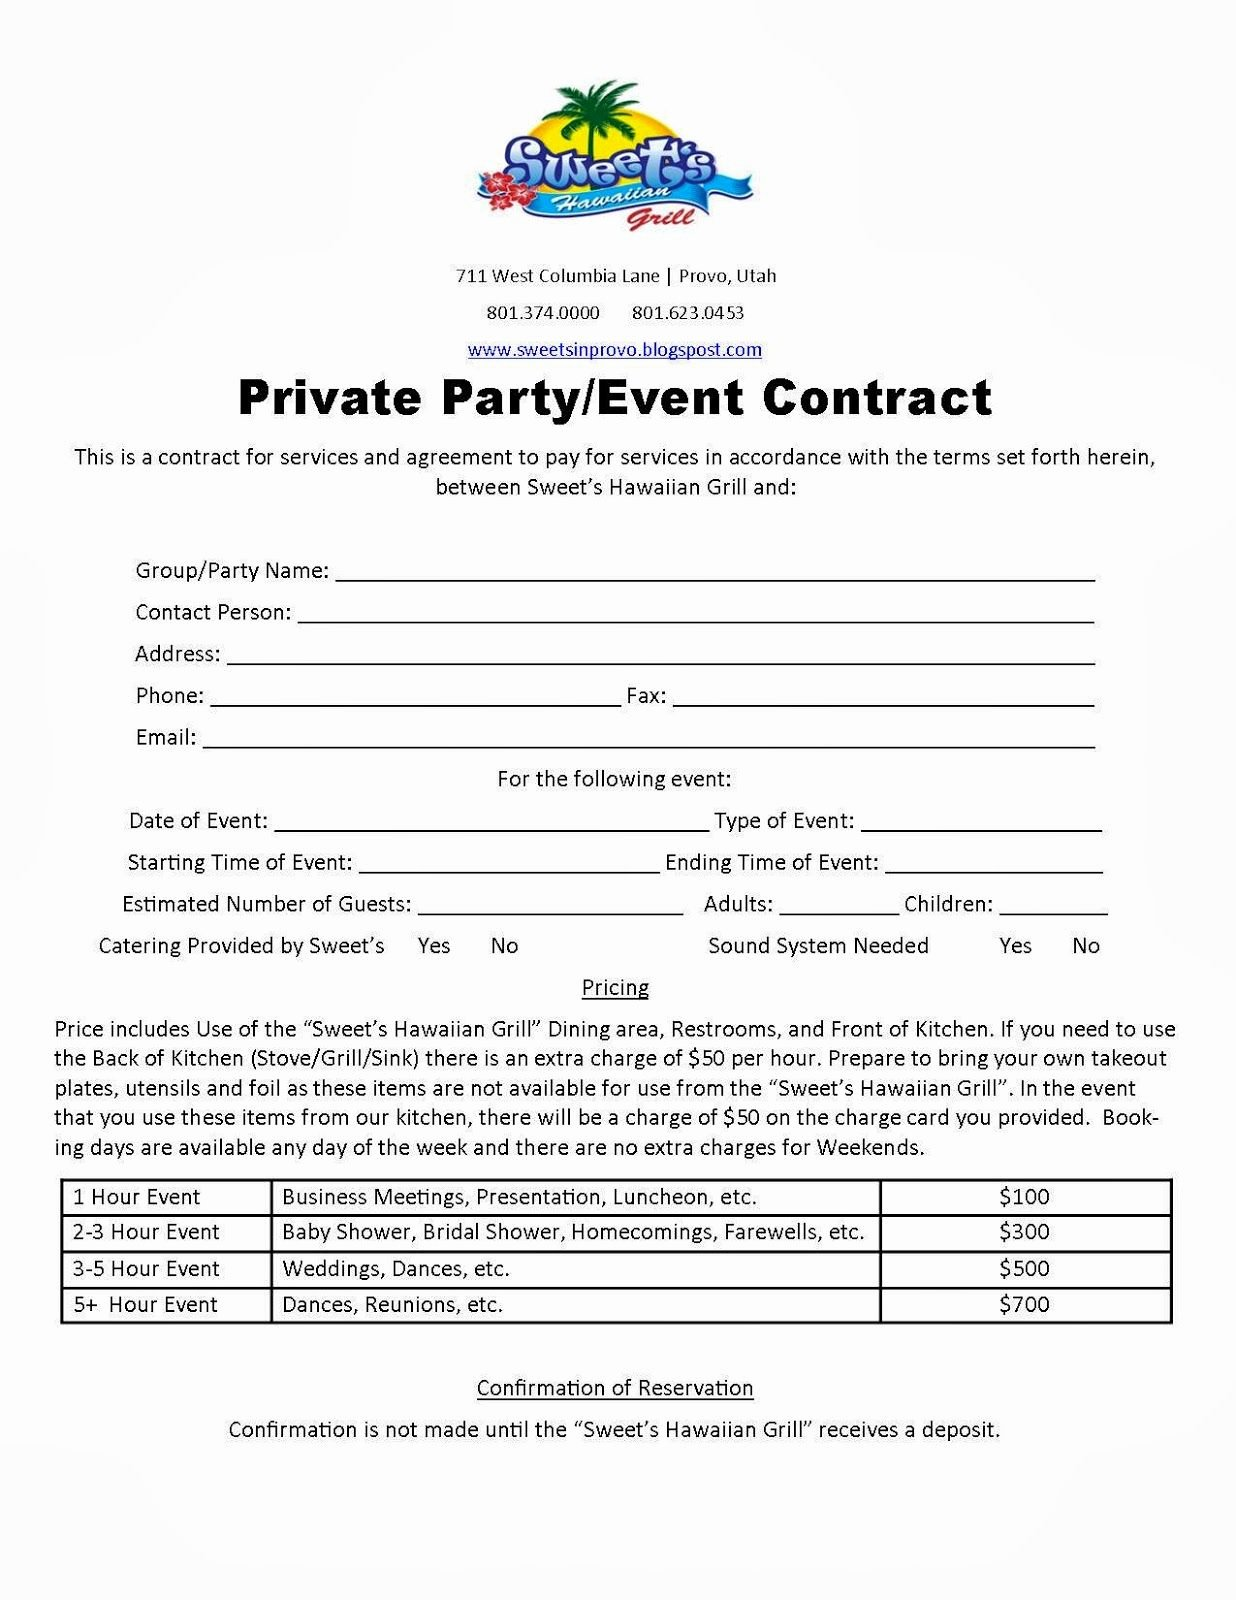 Event Planning Contract Template Lovely Party Planner Contract Template Google Search